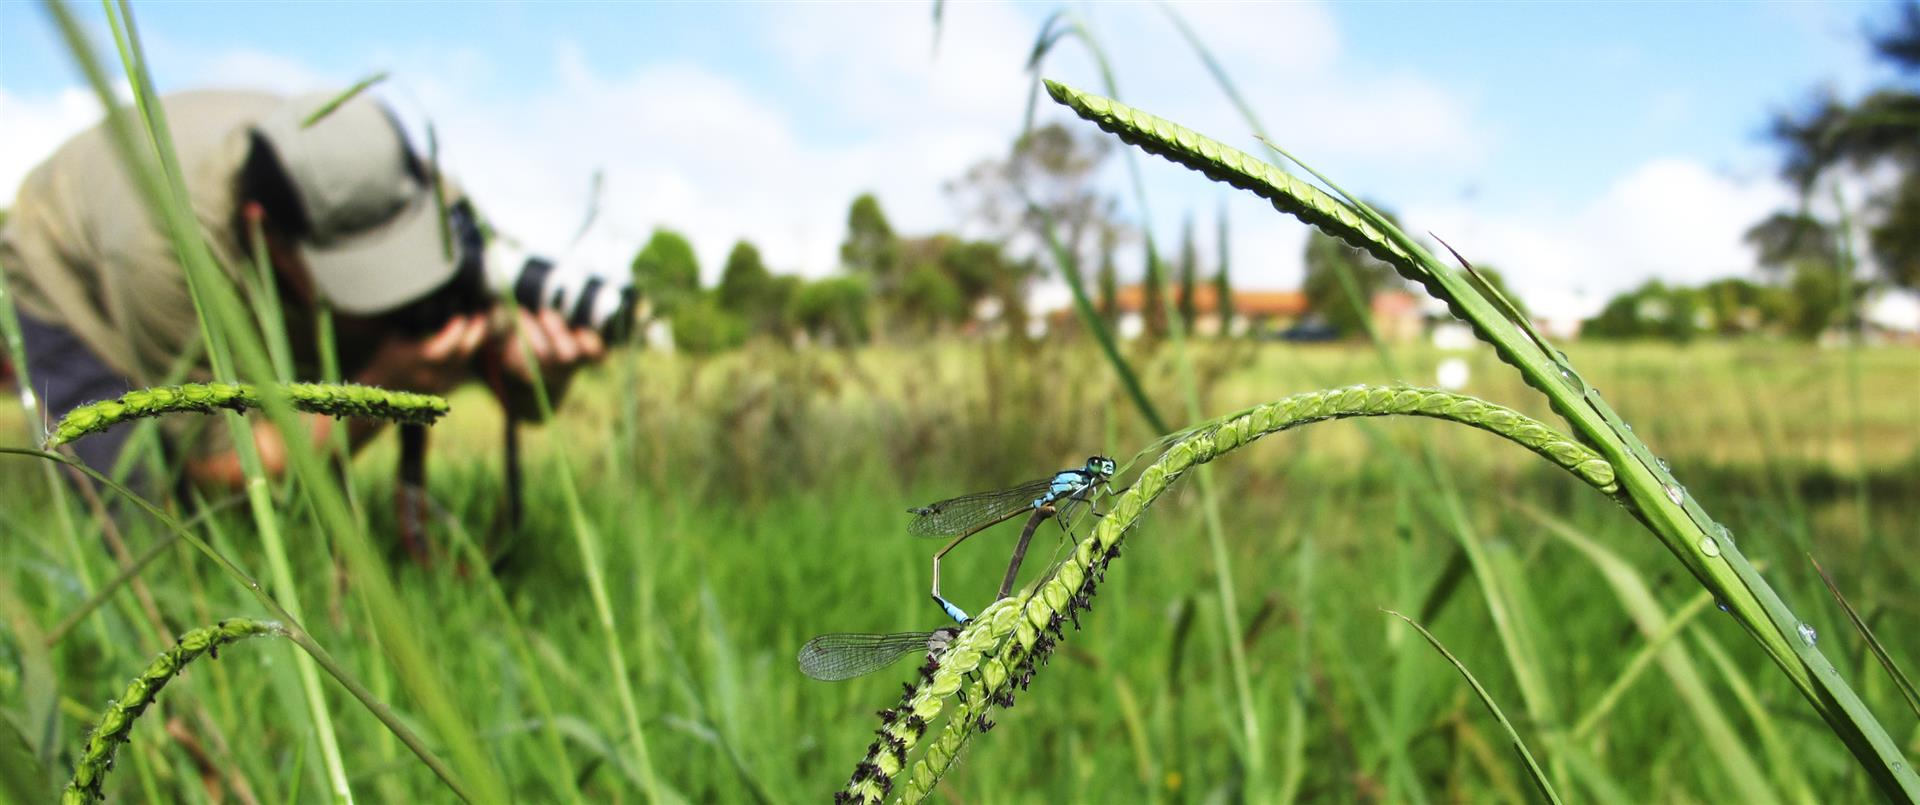 Photographing Common Bluetails (Ischnura heterosticta), Toowoomba. Photo H. Ashdown.